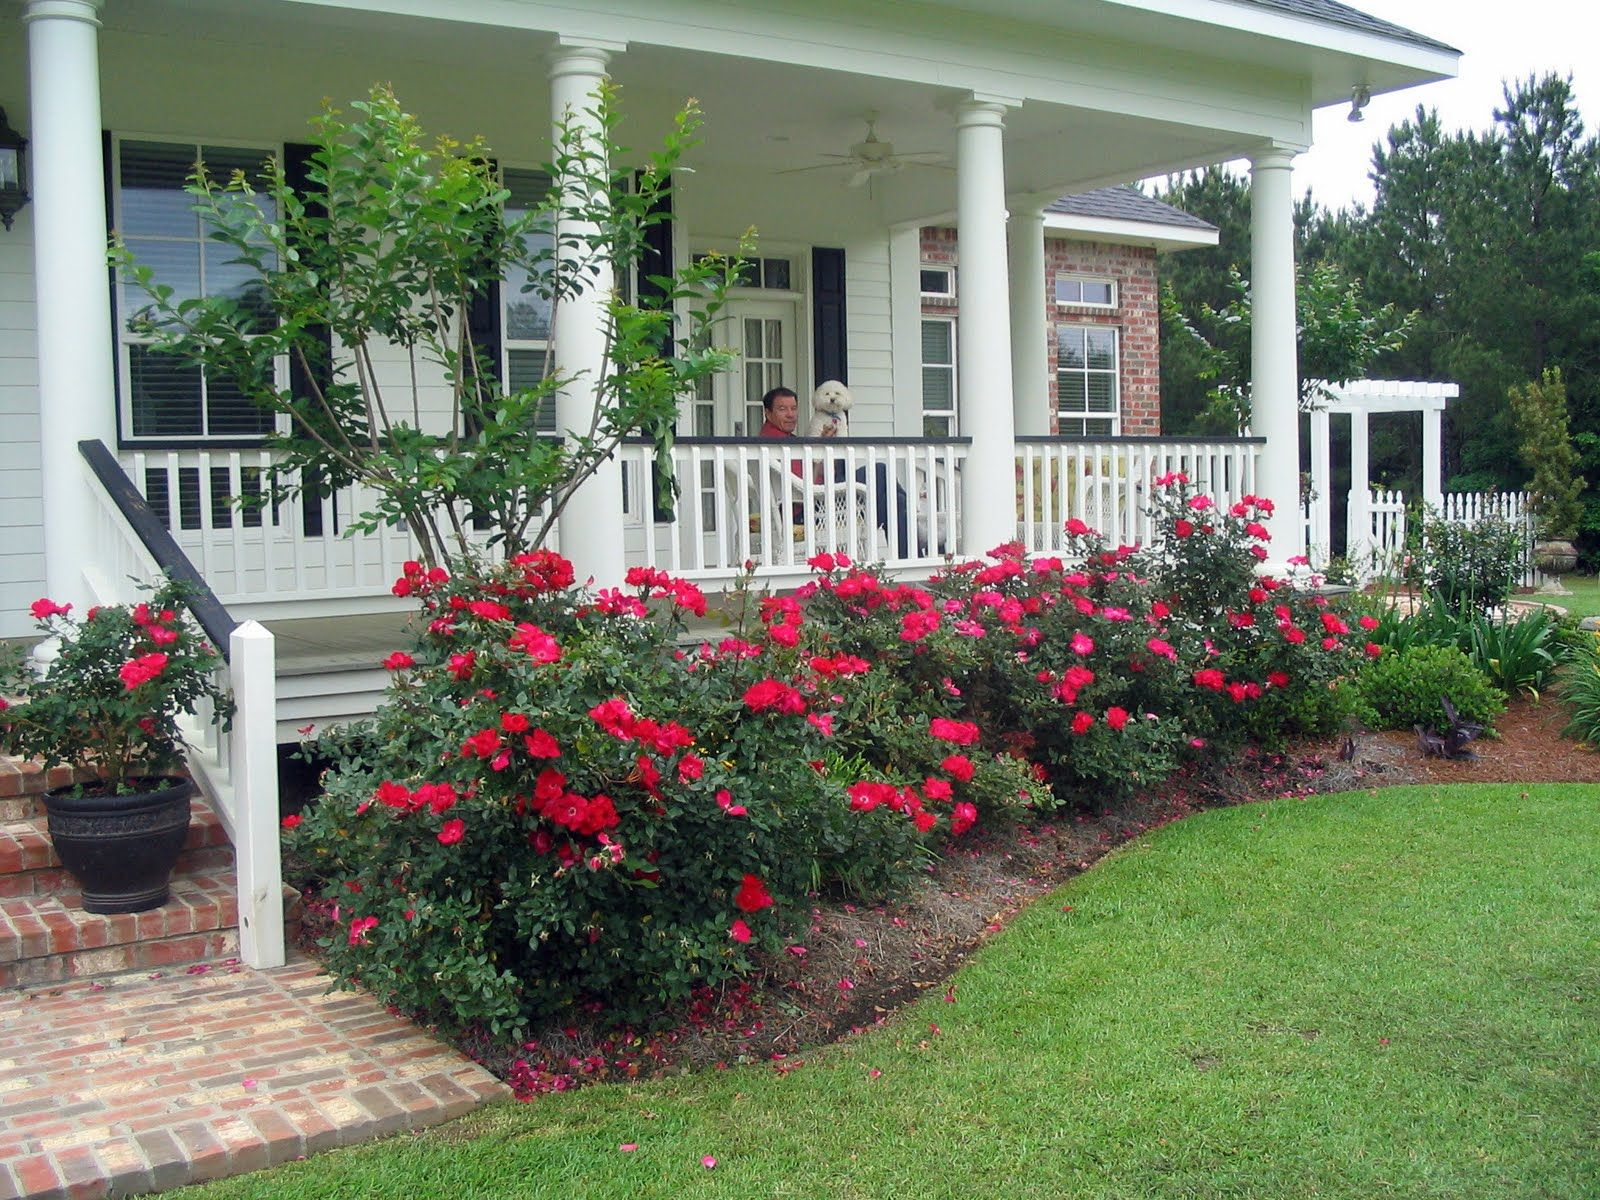 G And Boo Porch Jpg 1600 1200 Porch Landscaping Front Yard Landscaping Design Front Porch Landscape Landscaping ideas for house with front porch